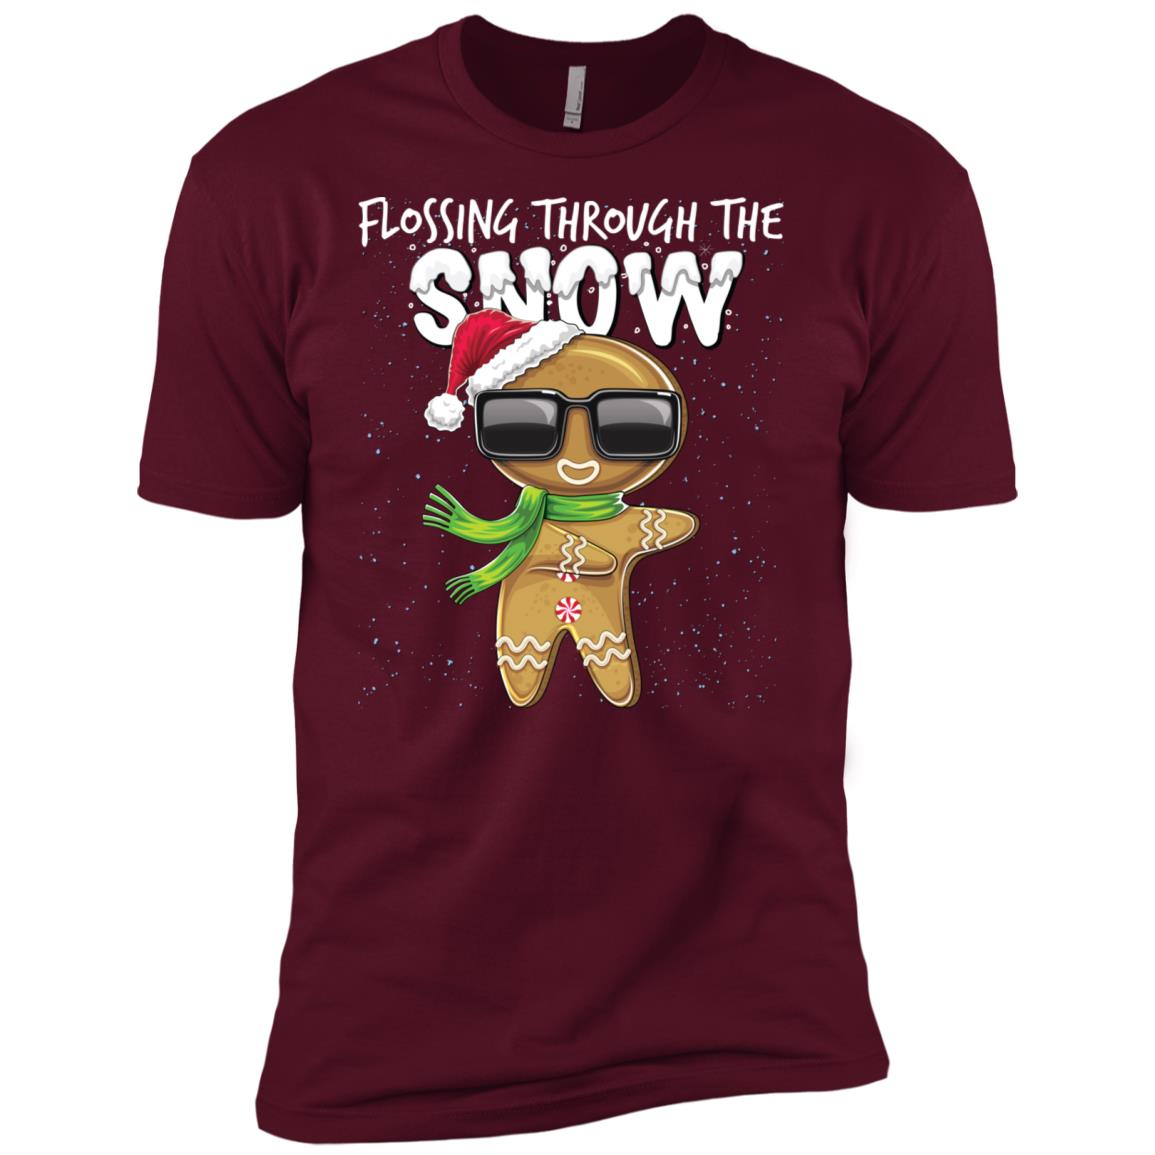 Flossing Through the Snow Gingerbread Gift-1 Men Short Sleeve T-Shirt